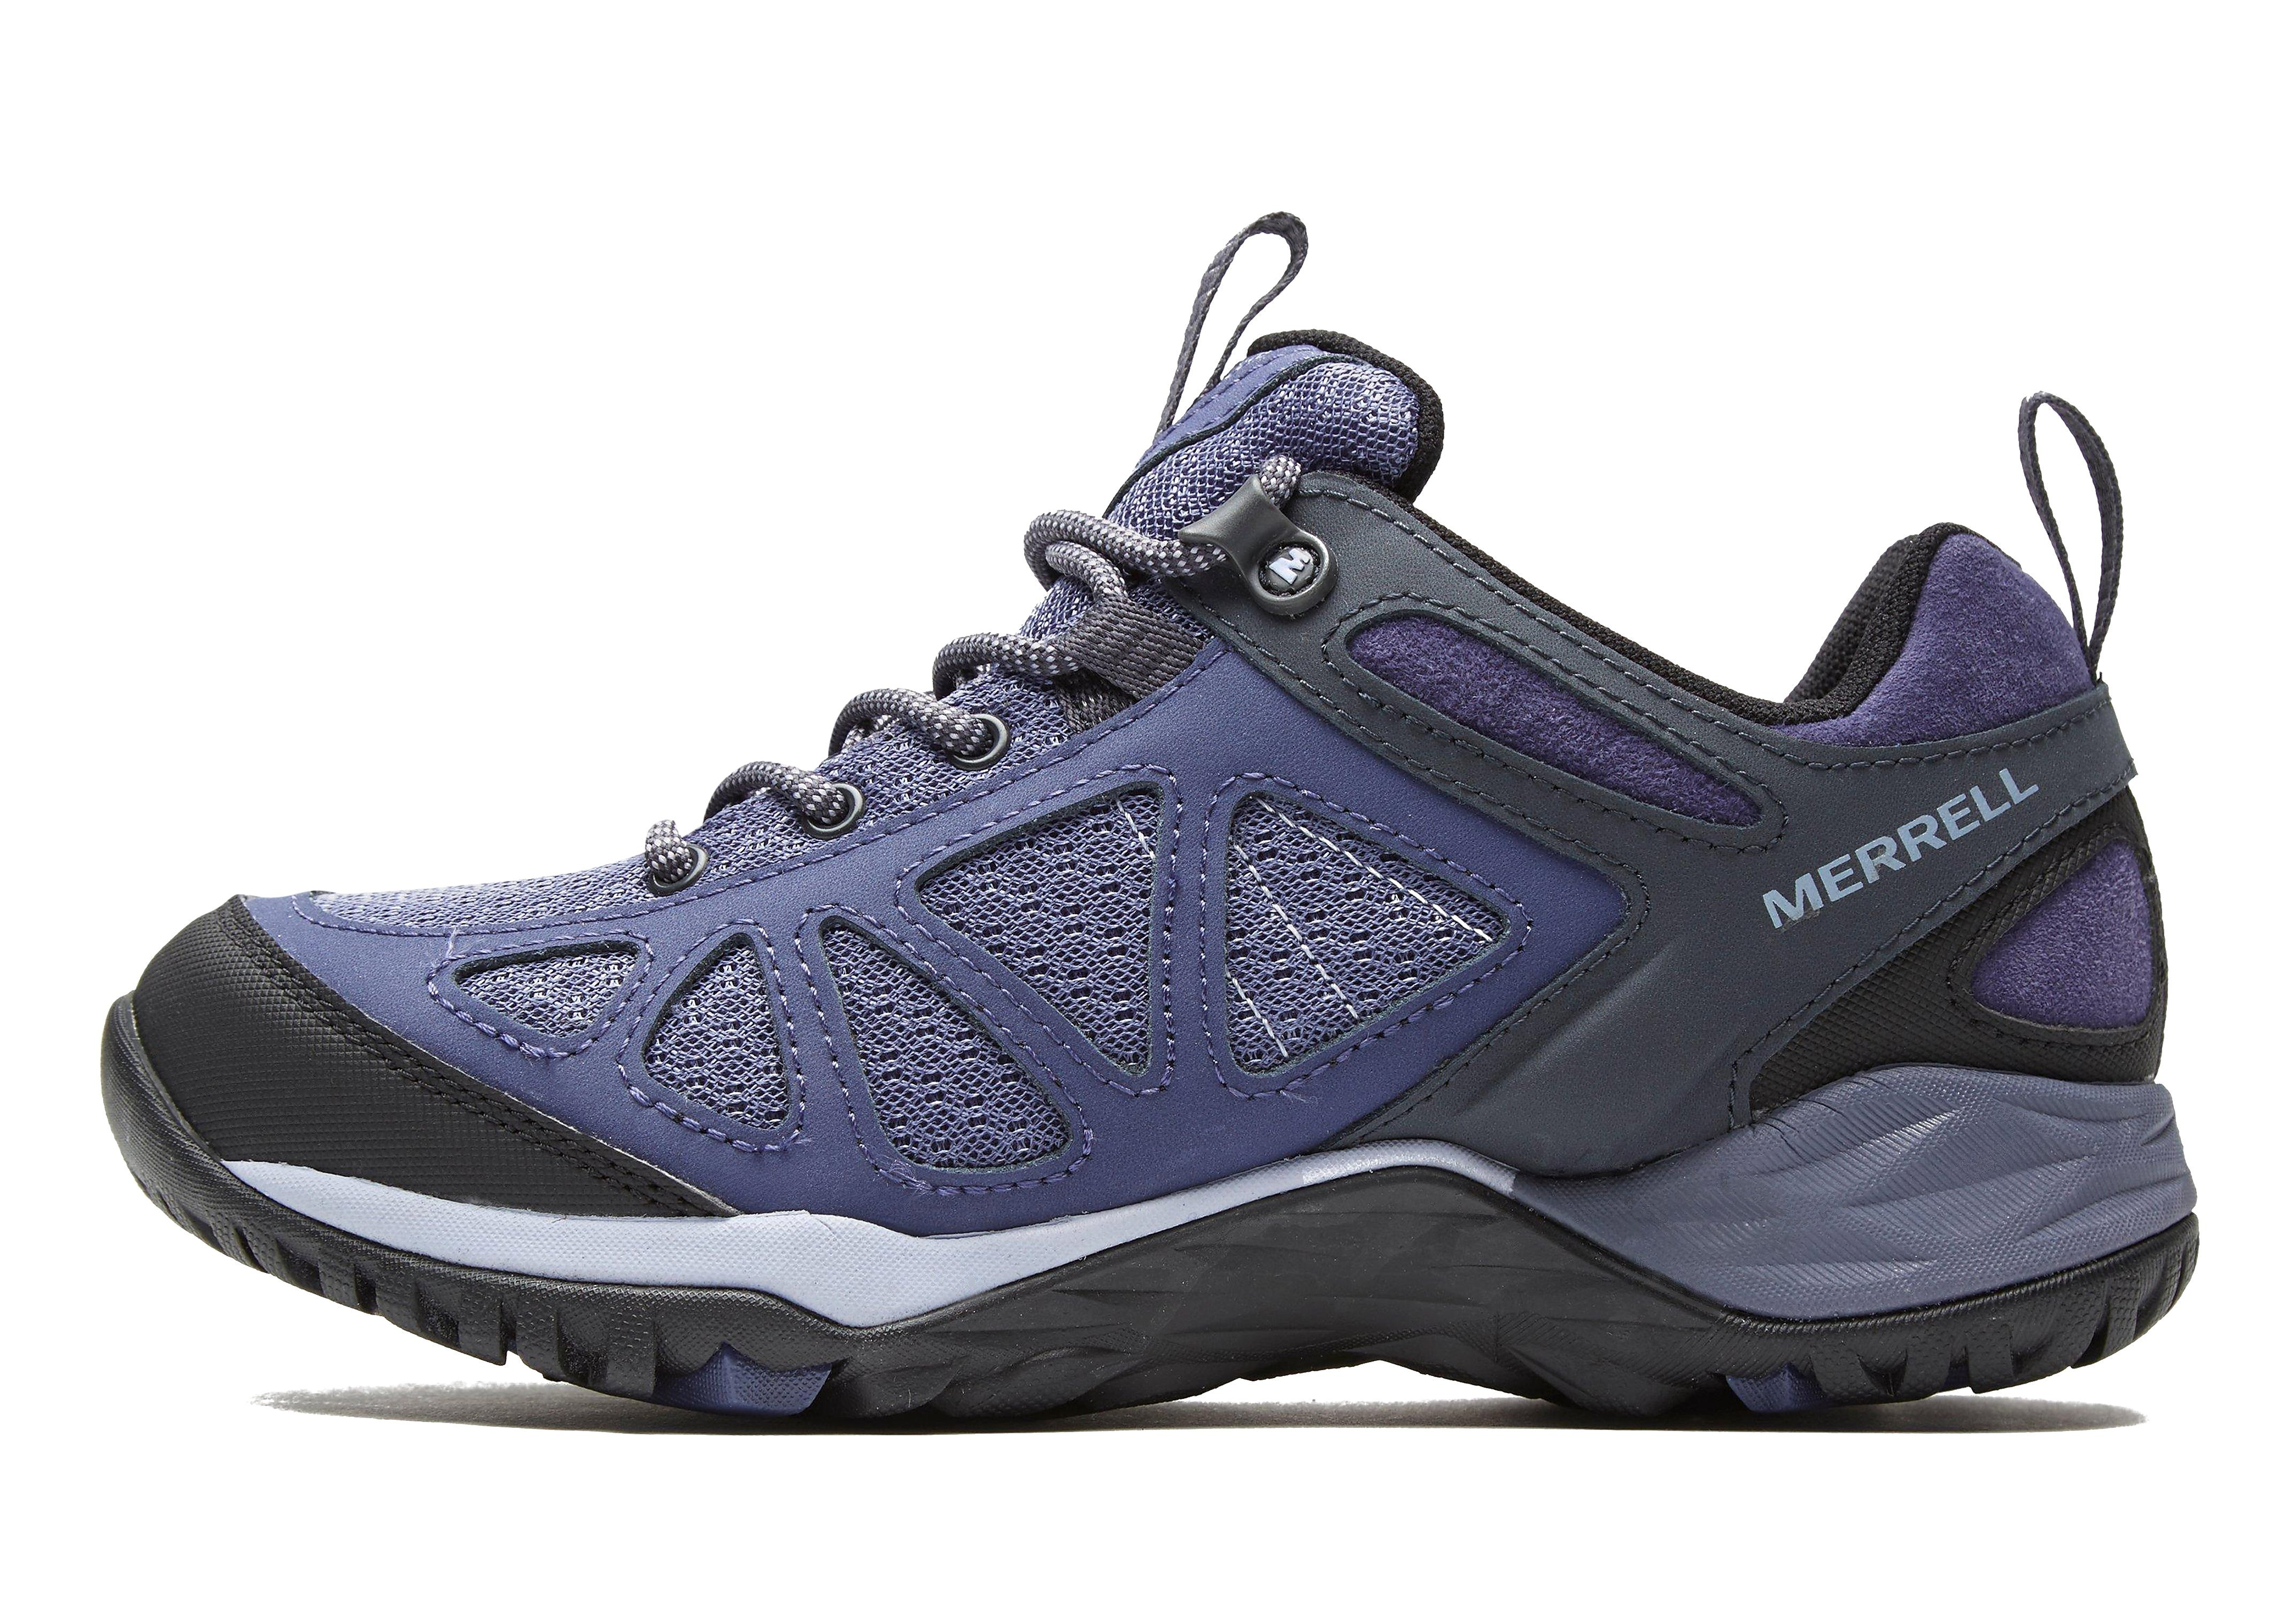 Merrell Siren Sport Q2 Women's Walking Shoes